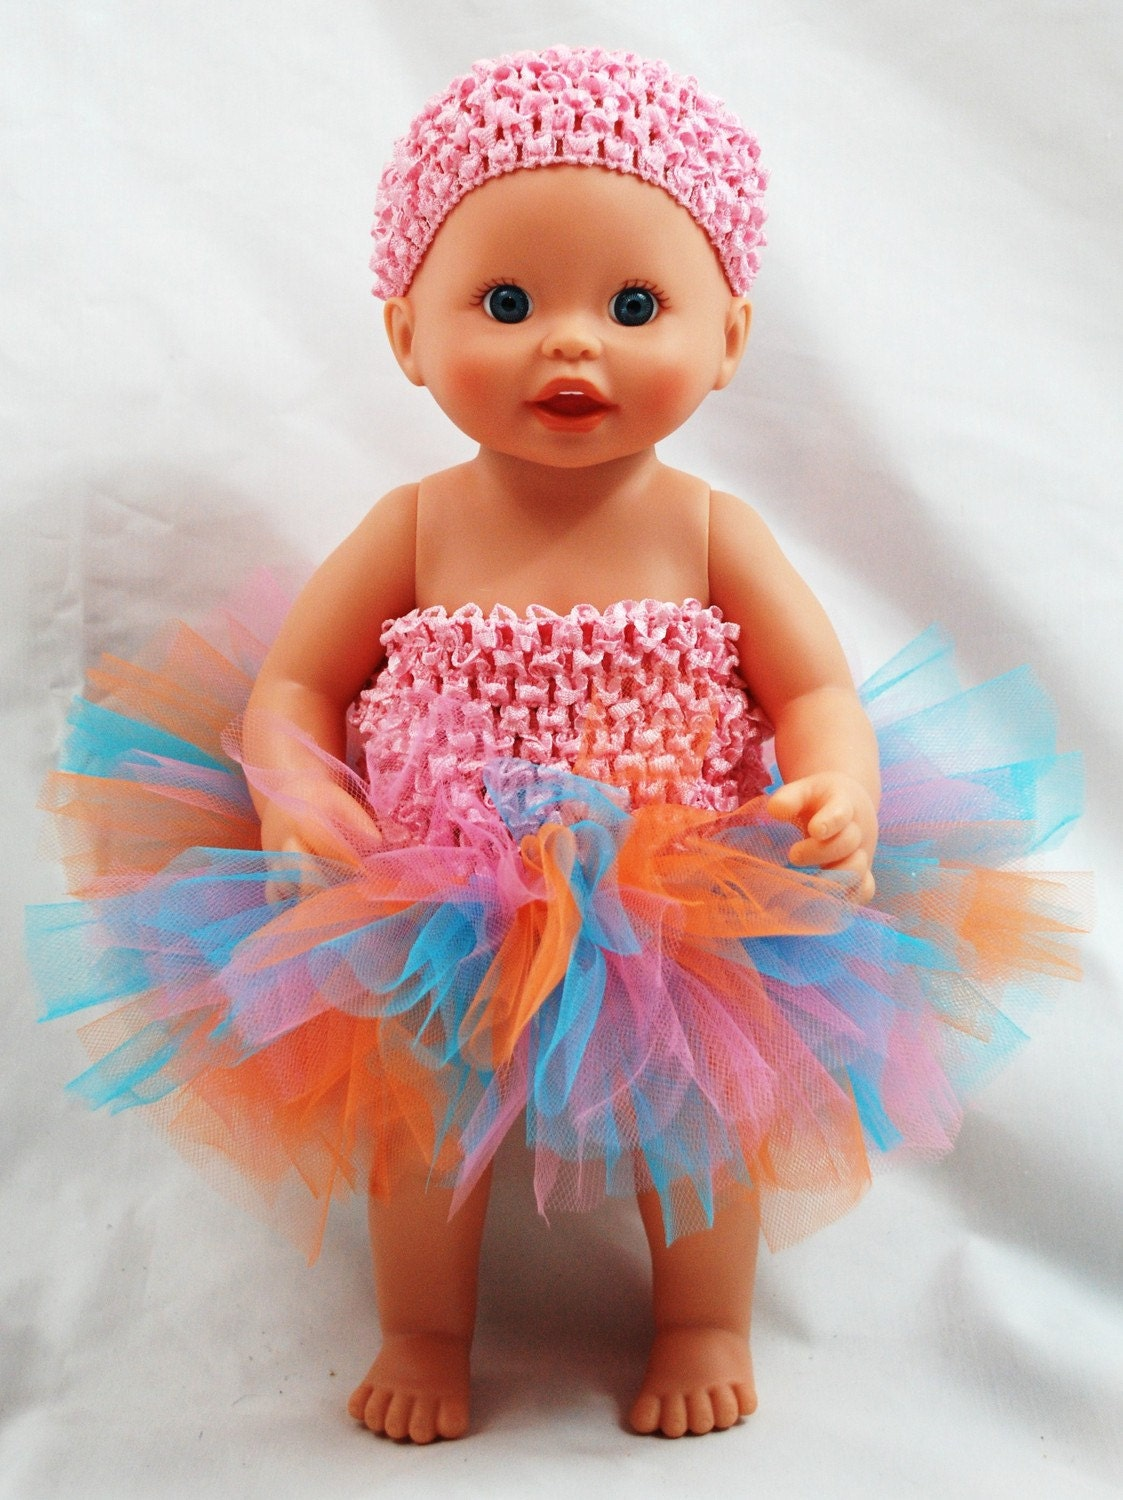 Create Your Own Baby Doll Tutu Fits American Girl Doll And